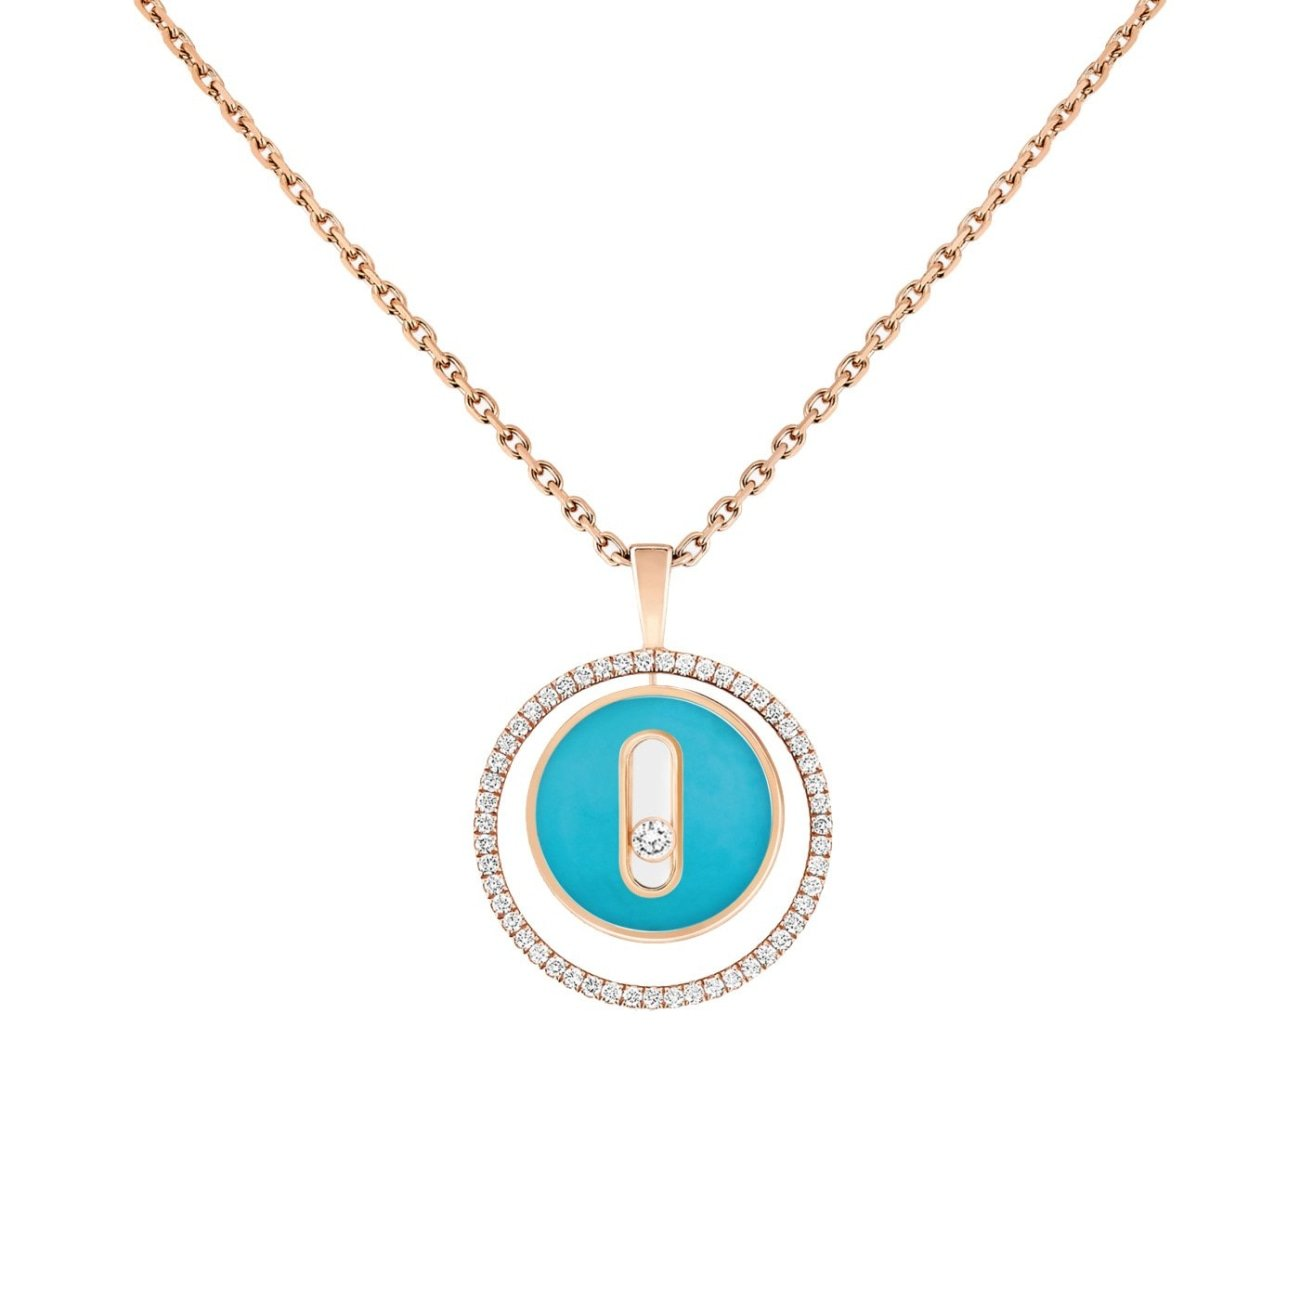 https://www.manfredijewels.com/collections/jewelry/products/rose-gold-diamond-necklace-turquoise-lucky-move-pm-necklace